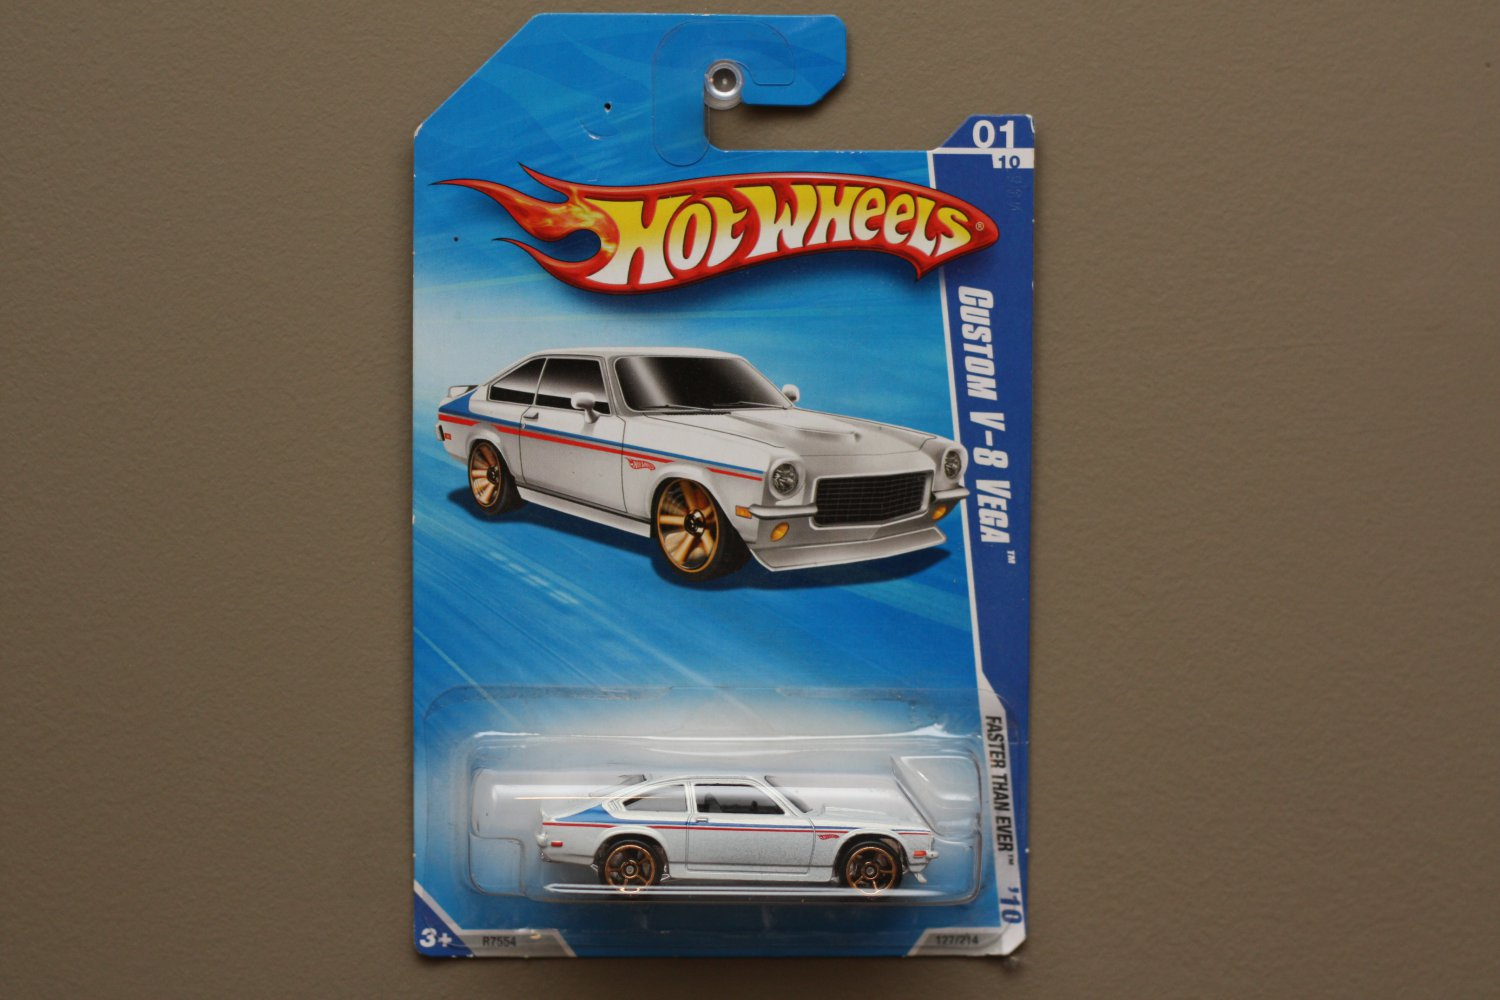 Hot Wheels 2010 Faster Than Ever Custom V8 Vega (white) (see condition)